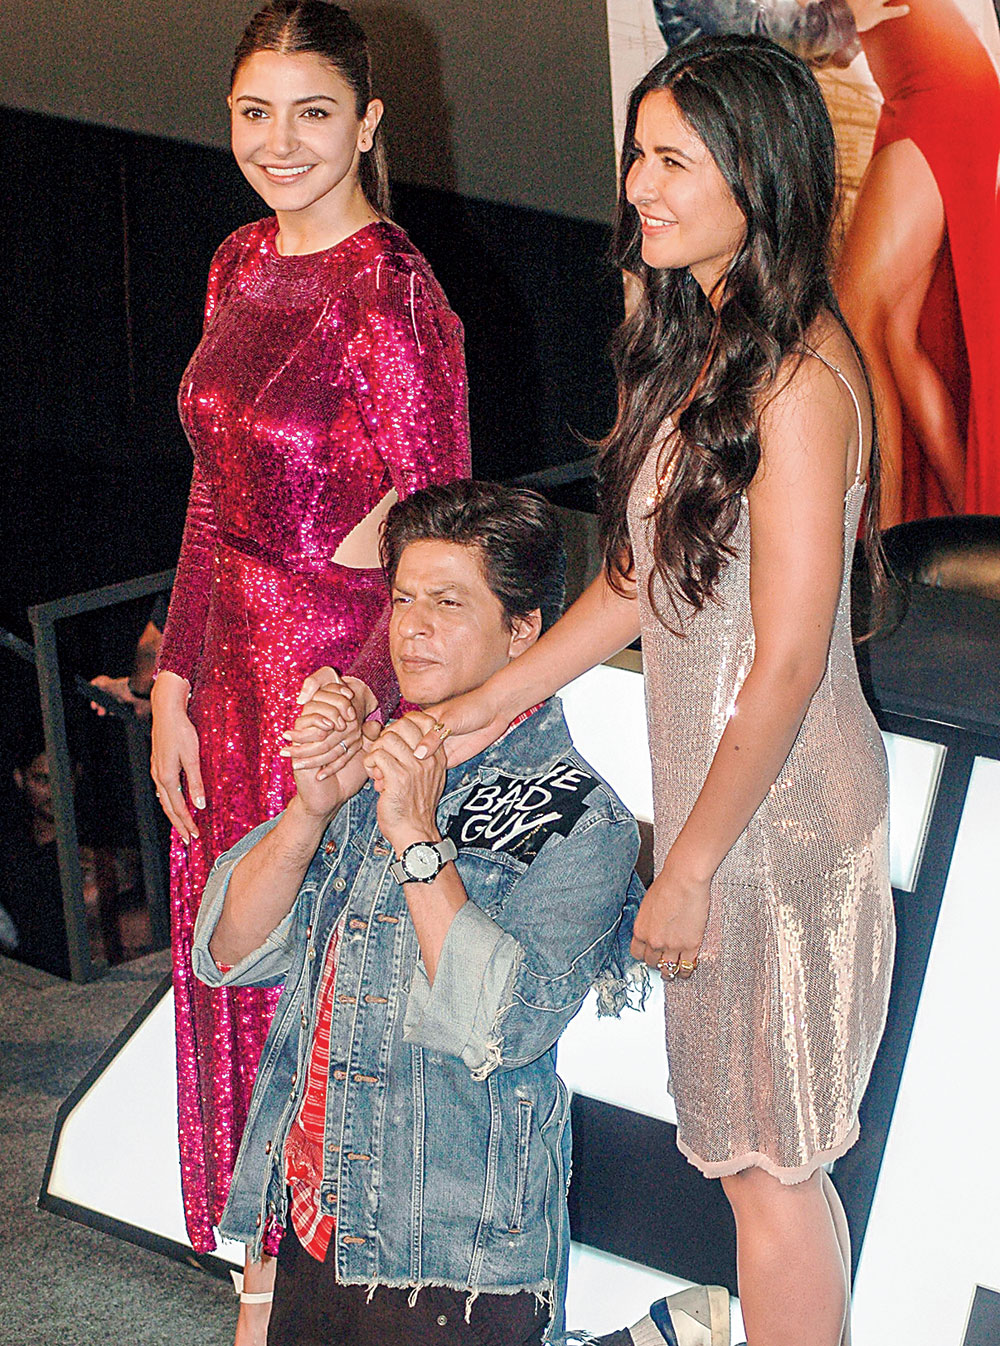 Anushka Sharma, Shah Rukh Khan and Katrina Kaif at Carnival Cinemas in Wadala to launch the trailer of Zero.